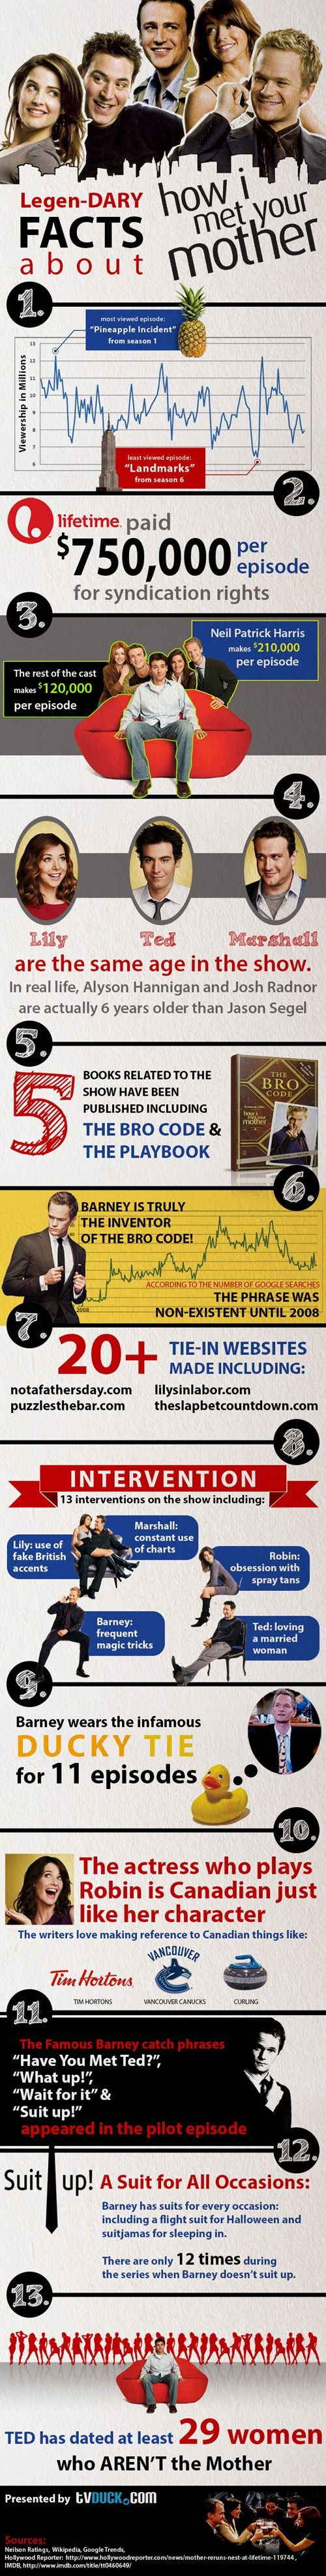 how i met your mother,legendary,TV,celeb,Neil Patrick Harris,infographic